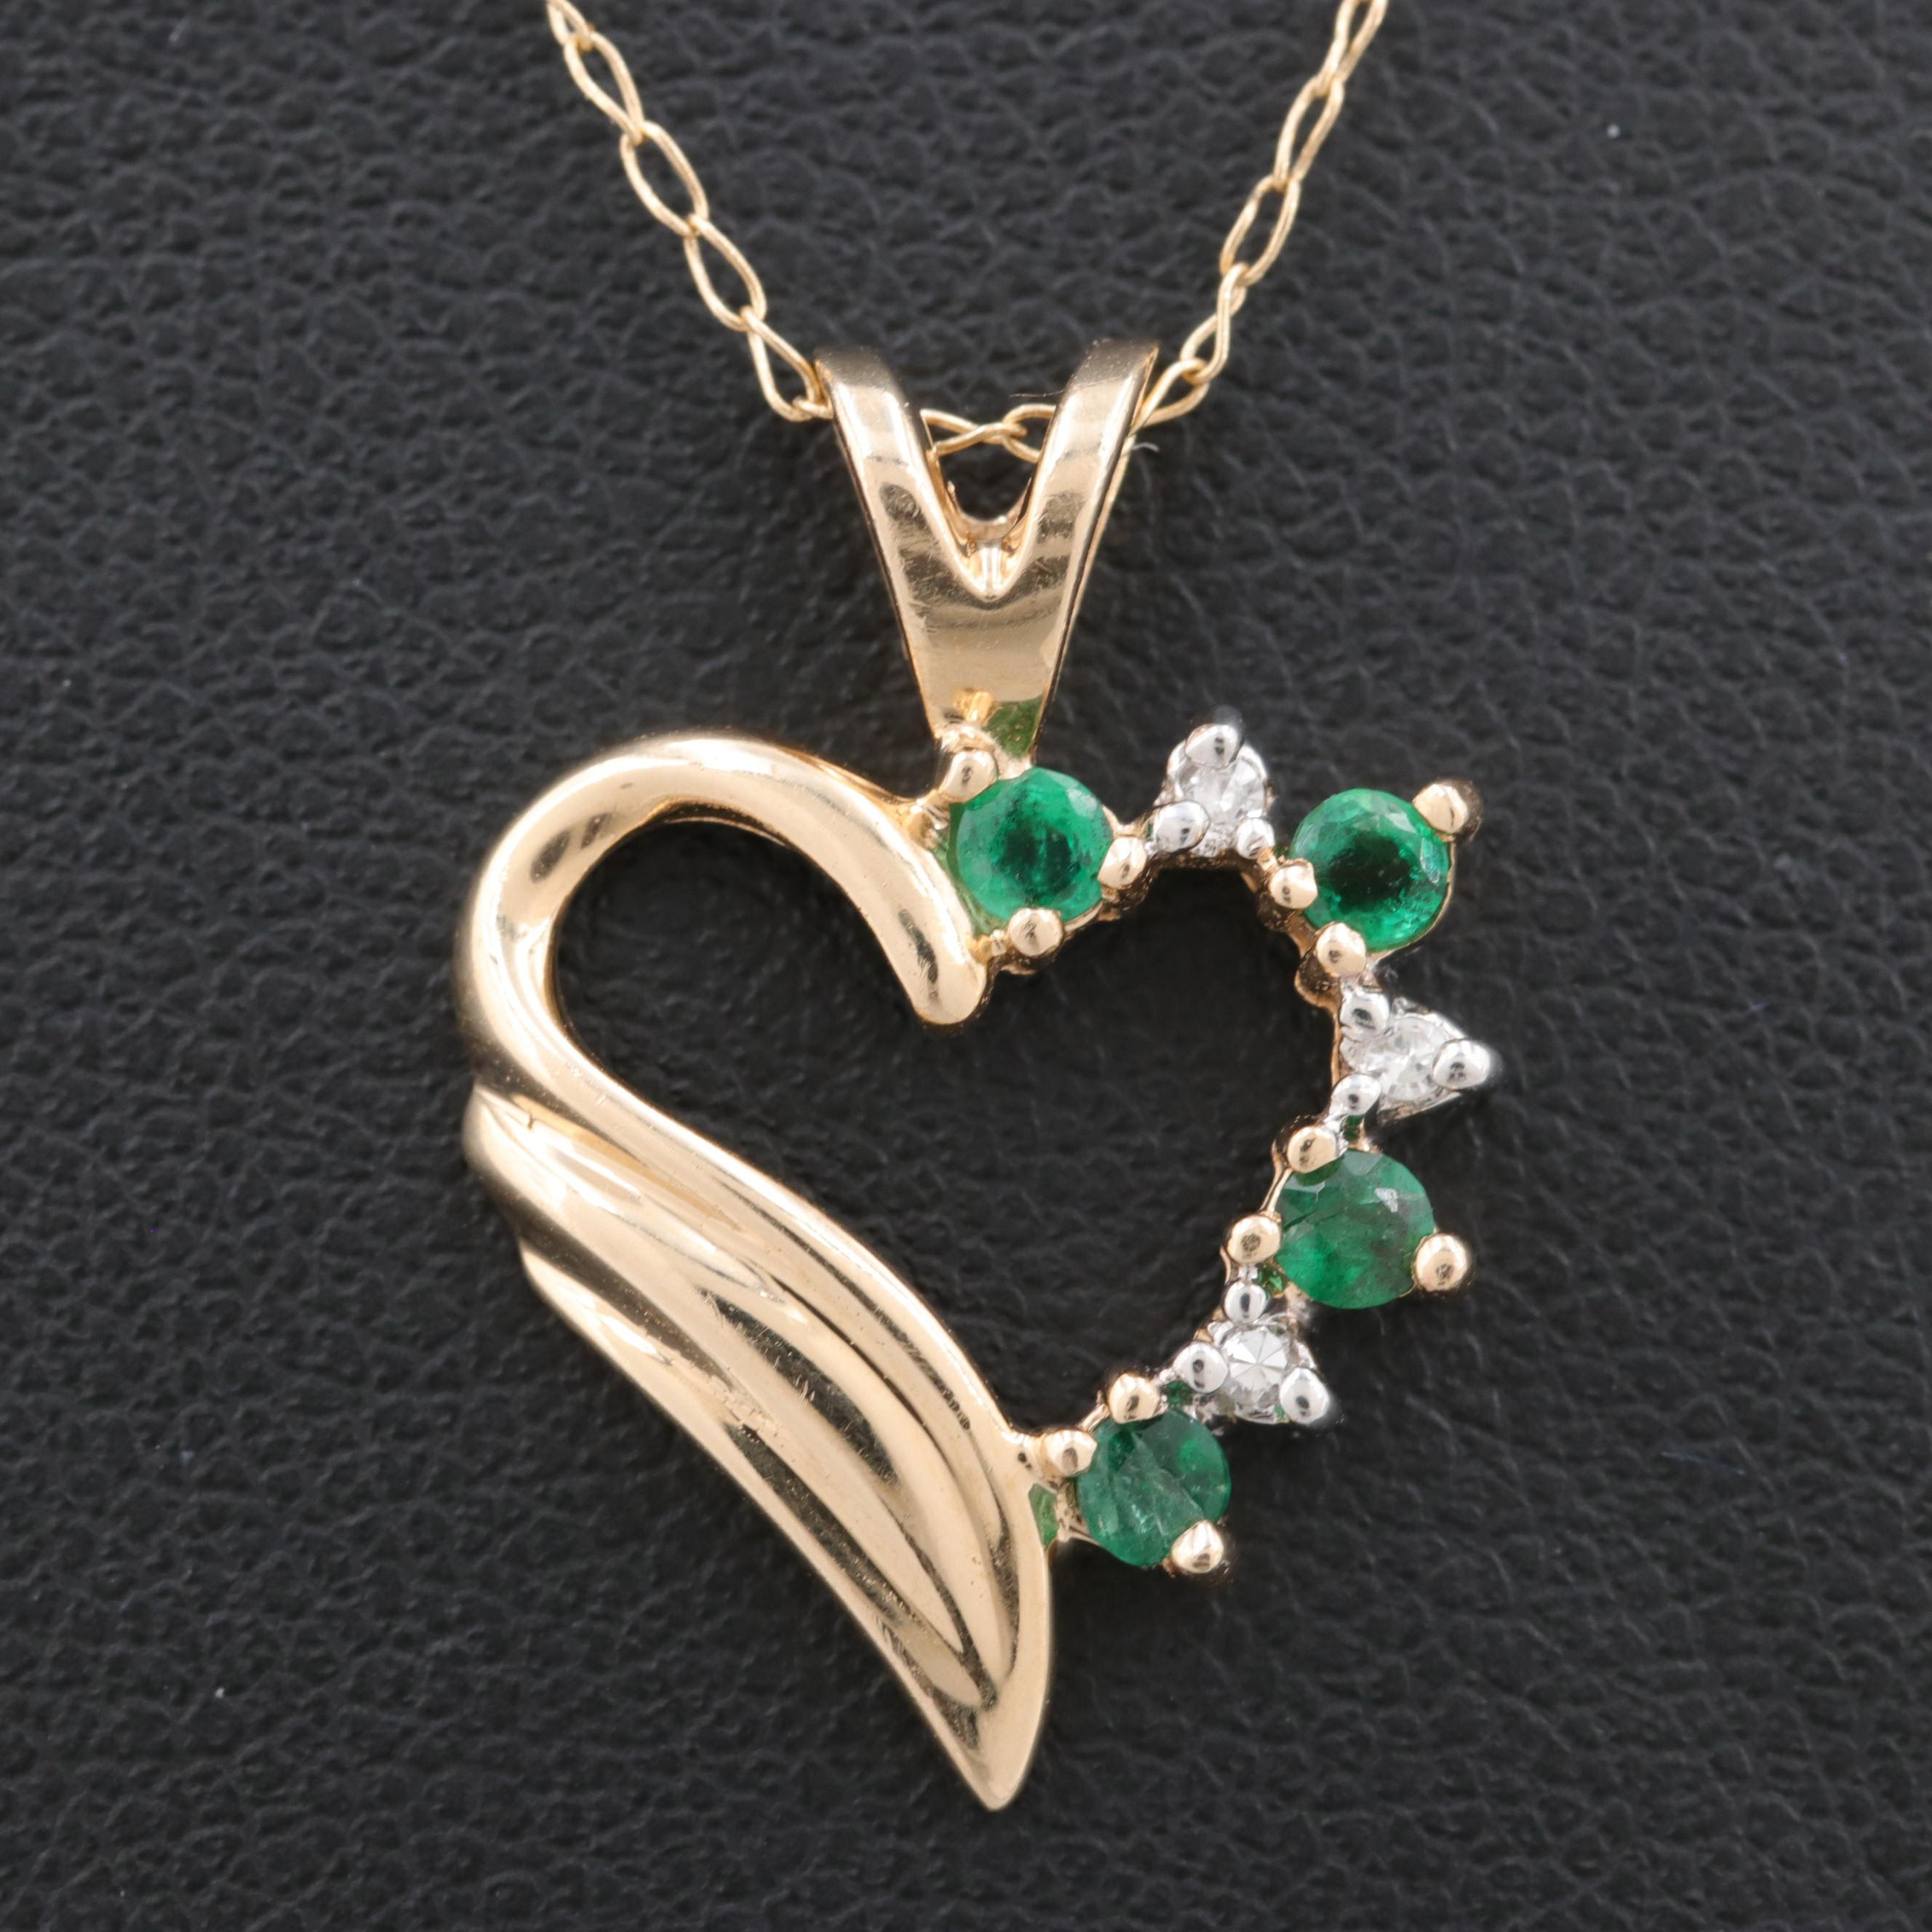 Alwand Vahan 14K Yellow Gold Emerald and Diamond Heart Shaped Pendant Necklace